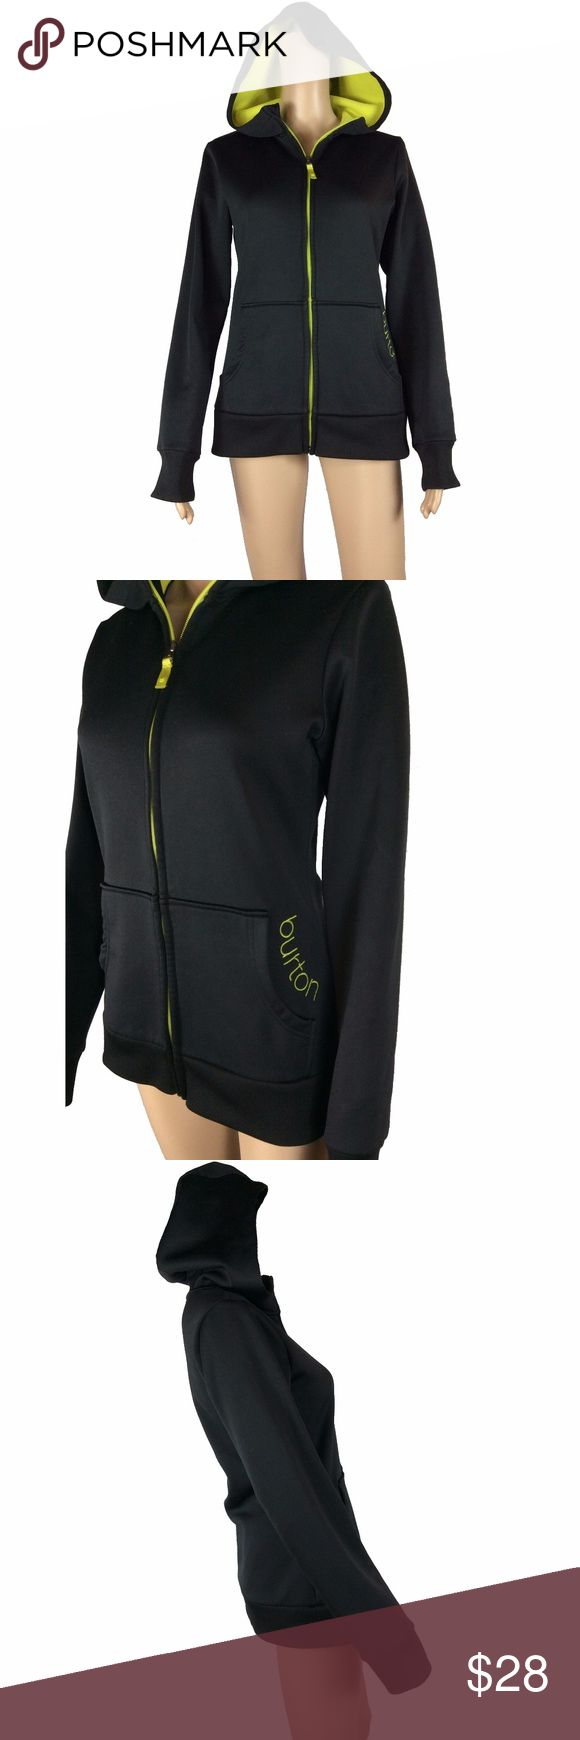 Black Burton zip up hoodie Black zip up hoodie with lime green fleece lining (lining on both pockets, hood and interior). size small. extremely soft material on both interior and exterior. zipper is also lime green. mannequin is 5'8 and a size XS/2.  has been washed, worn and laundered (hung to dry). excellent used condition. Burton Tops Sweatshirts & Hoodies